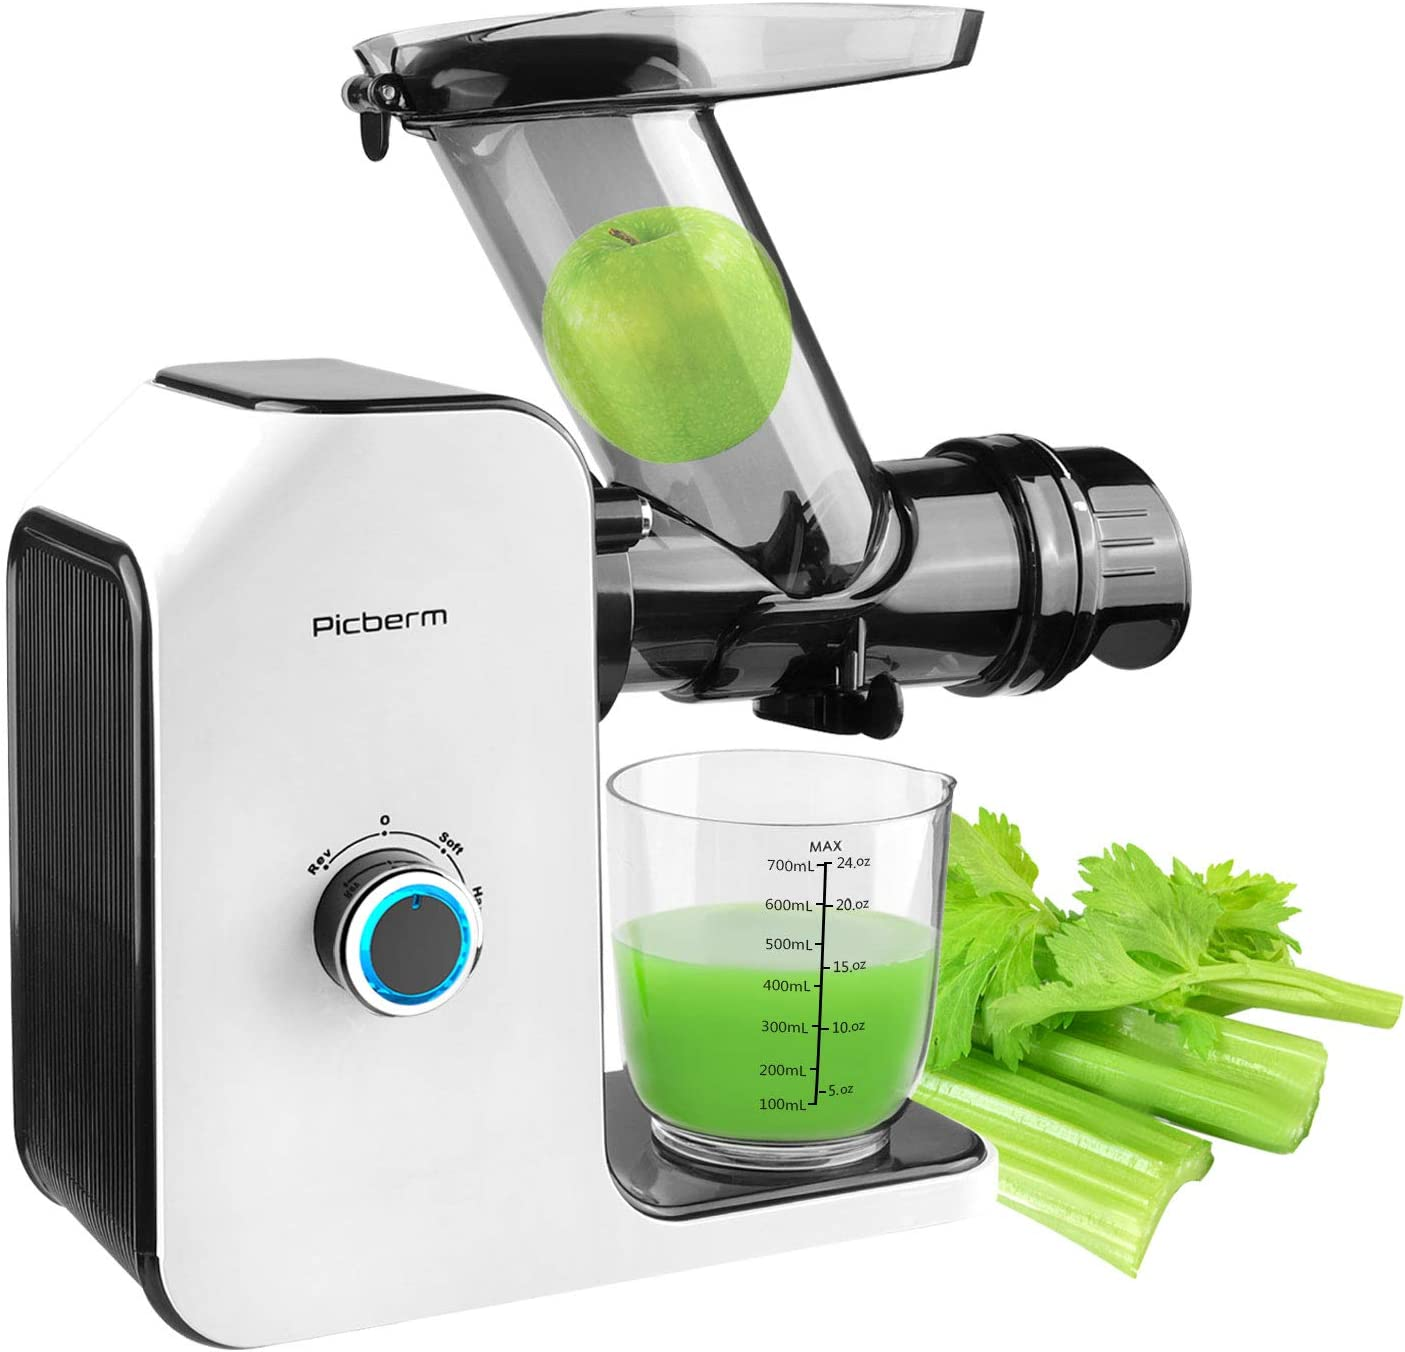 Wide Chute Masticating Juicer Picberm Cold Press Juicer Extractor, Juicer Machines for Higher Nutrient Fruit and Vegetable Juice, Quiet Motor & BPA-FREE, Easy to Clean & BPA Free White